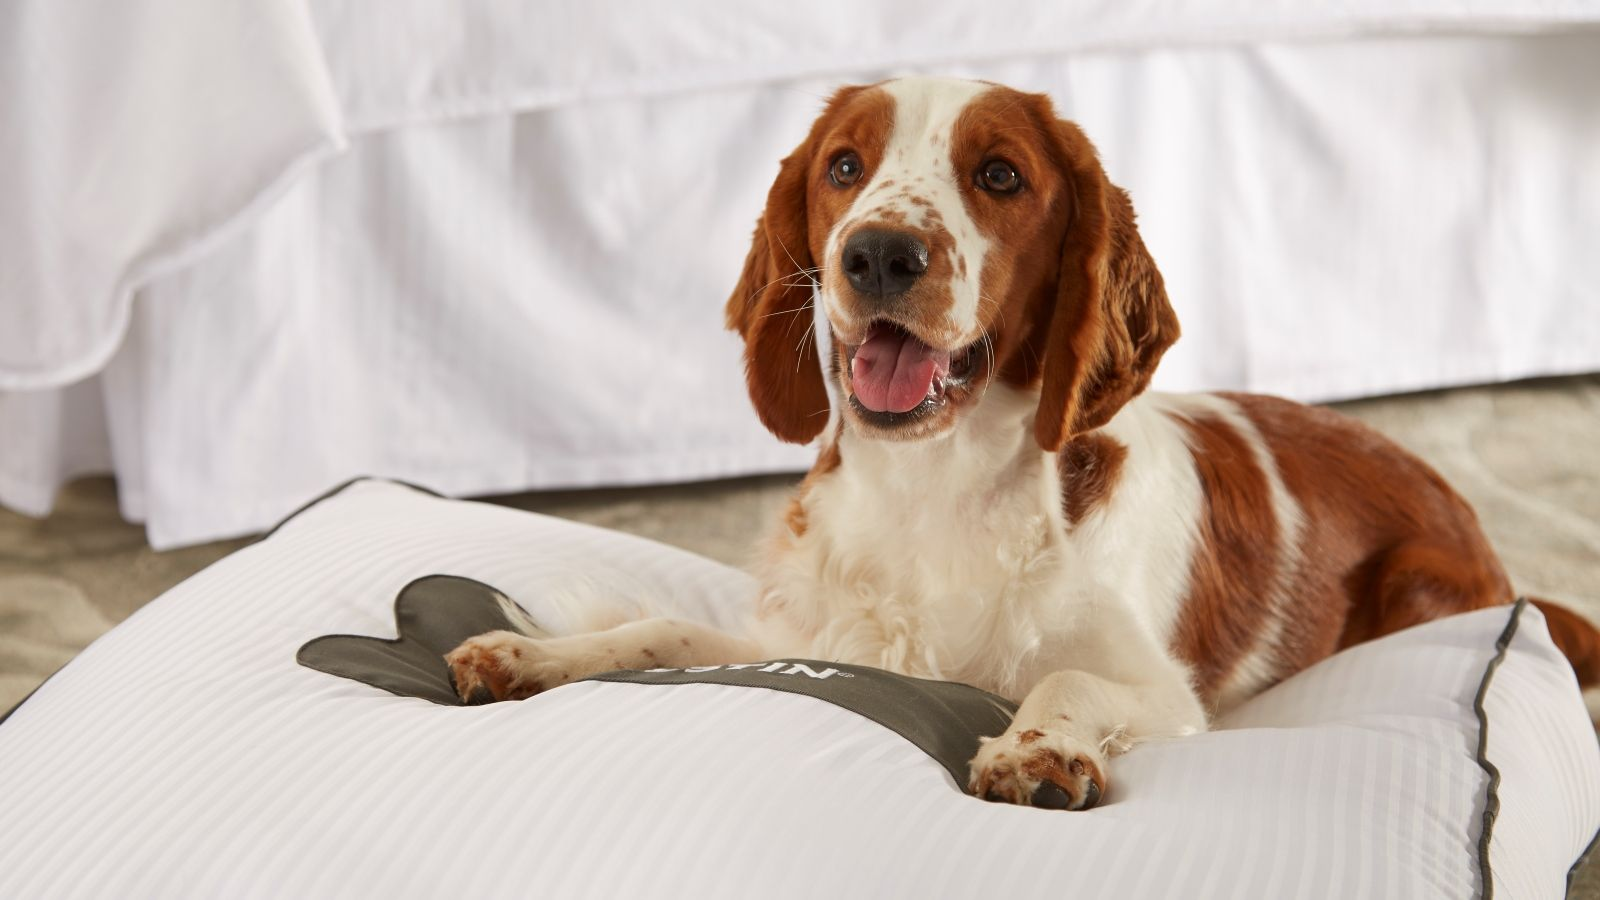 SFO Hotel Features - Pet Friendly Hotel